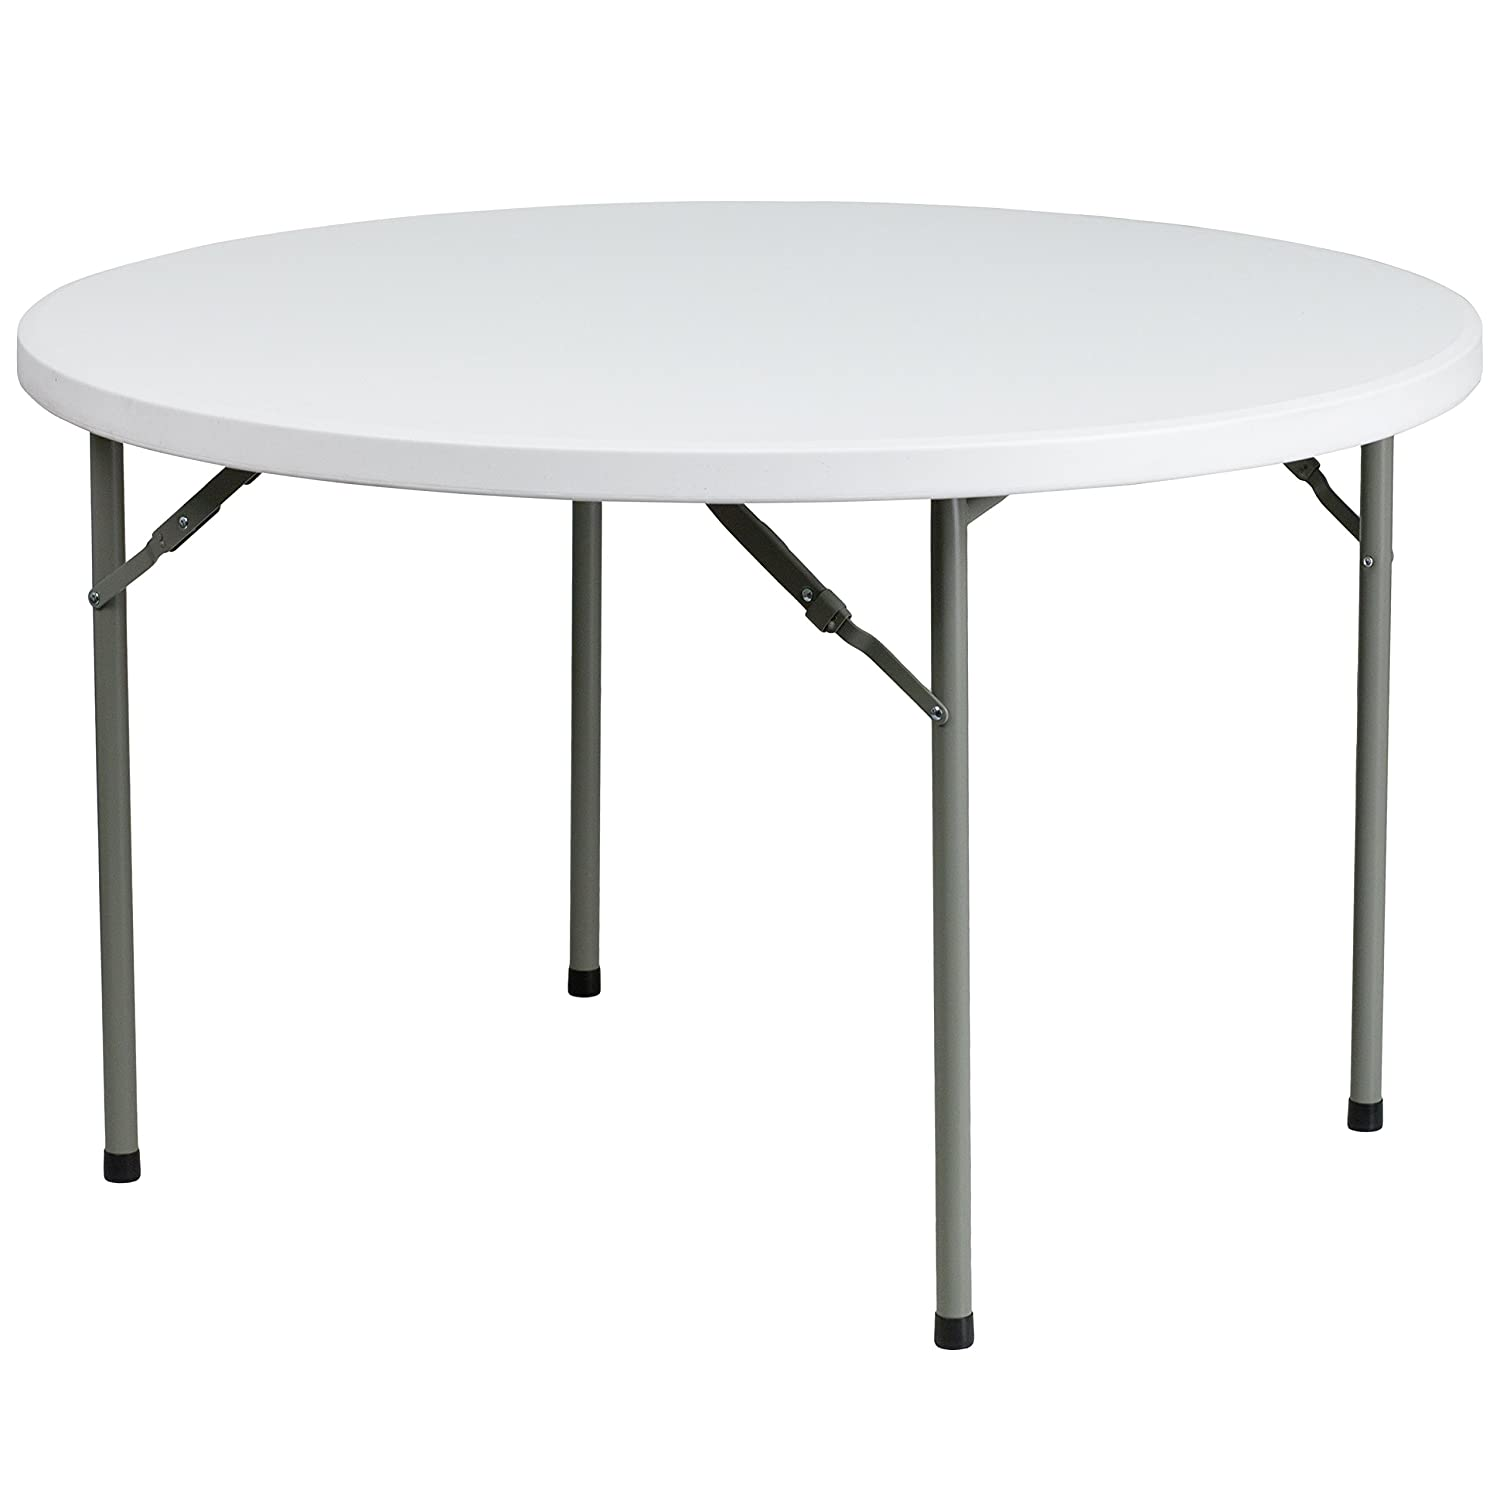 Flash Furniture 4-Foot Round Granite White Plastic Folding Table